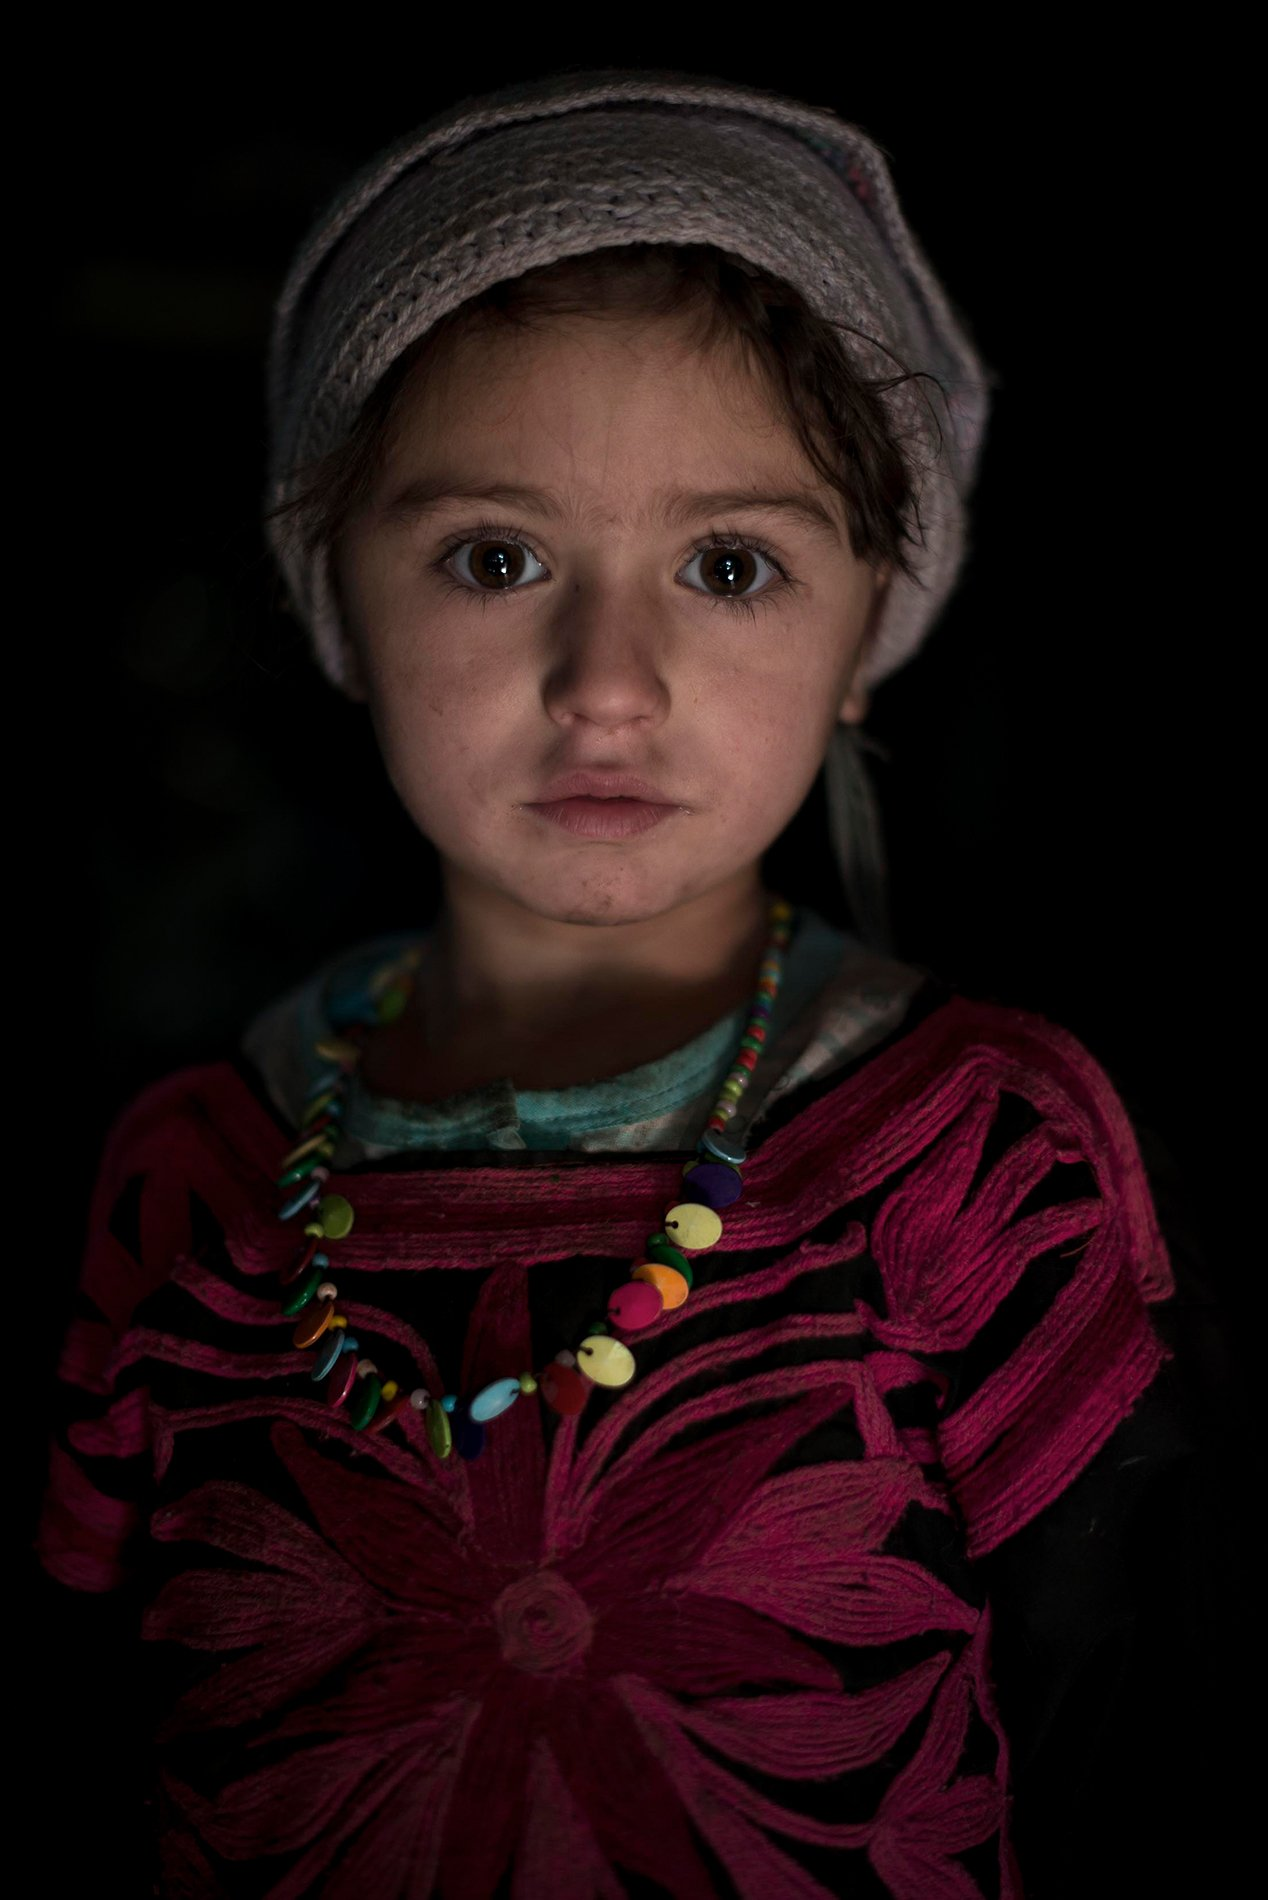 young girl colorful and high contrast portrait photography by mattia passarani.